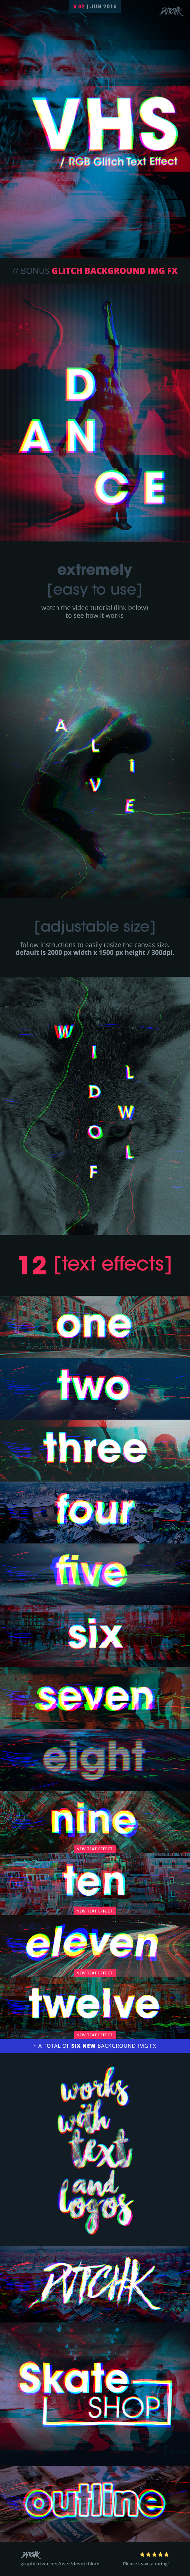 VHS - RGB Glitch Text Effect - Text Effects Actions